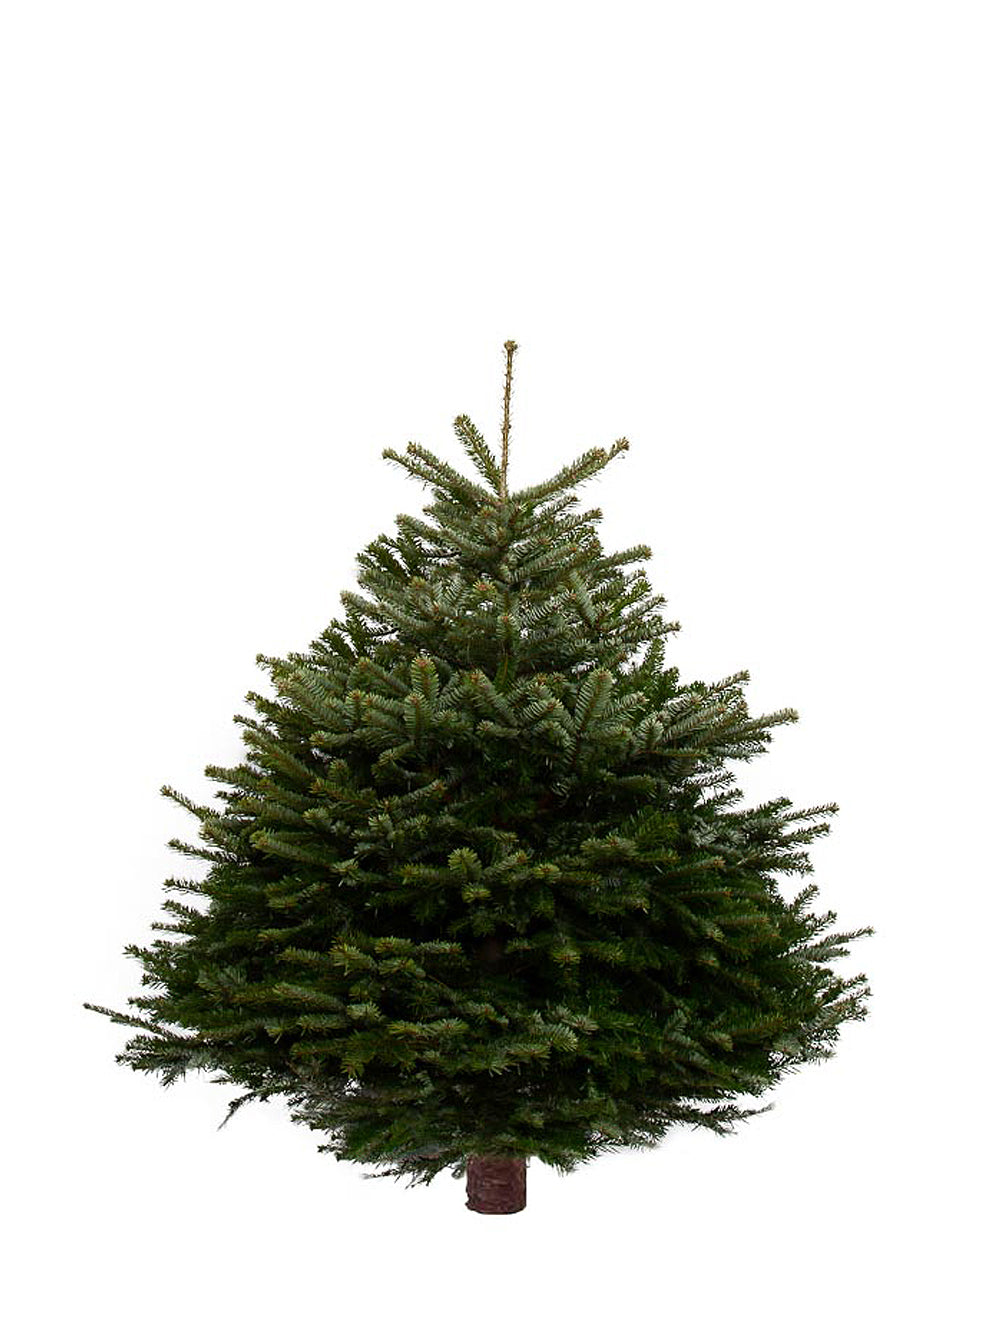 5ft Nordmann Fir Christmas Tree from Pines and Needles